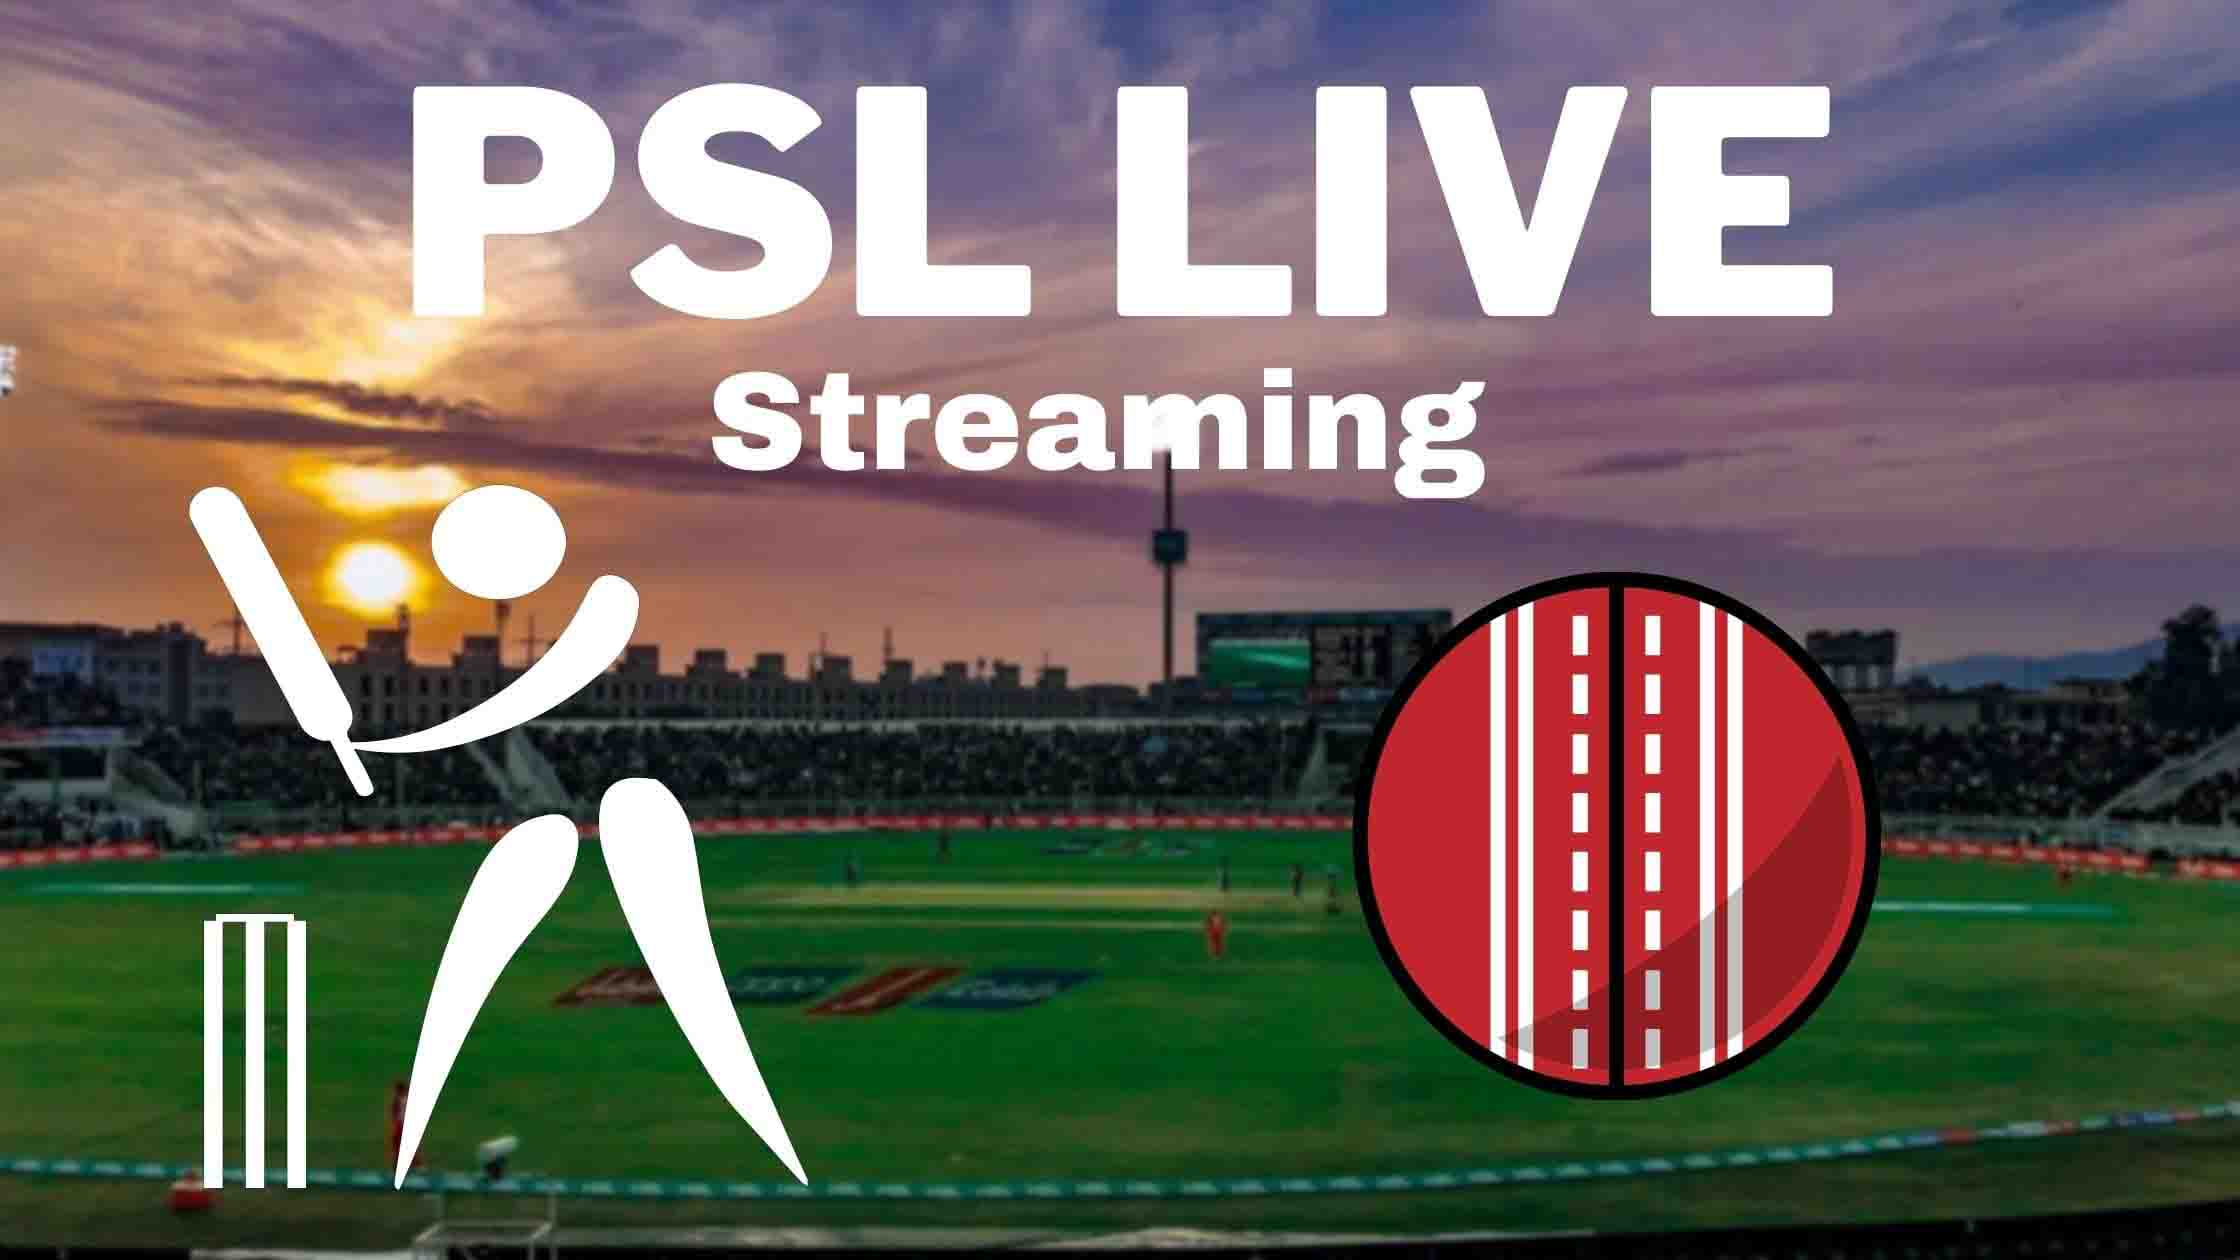 psl crictime live steaming